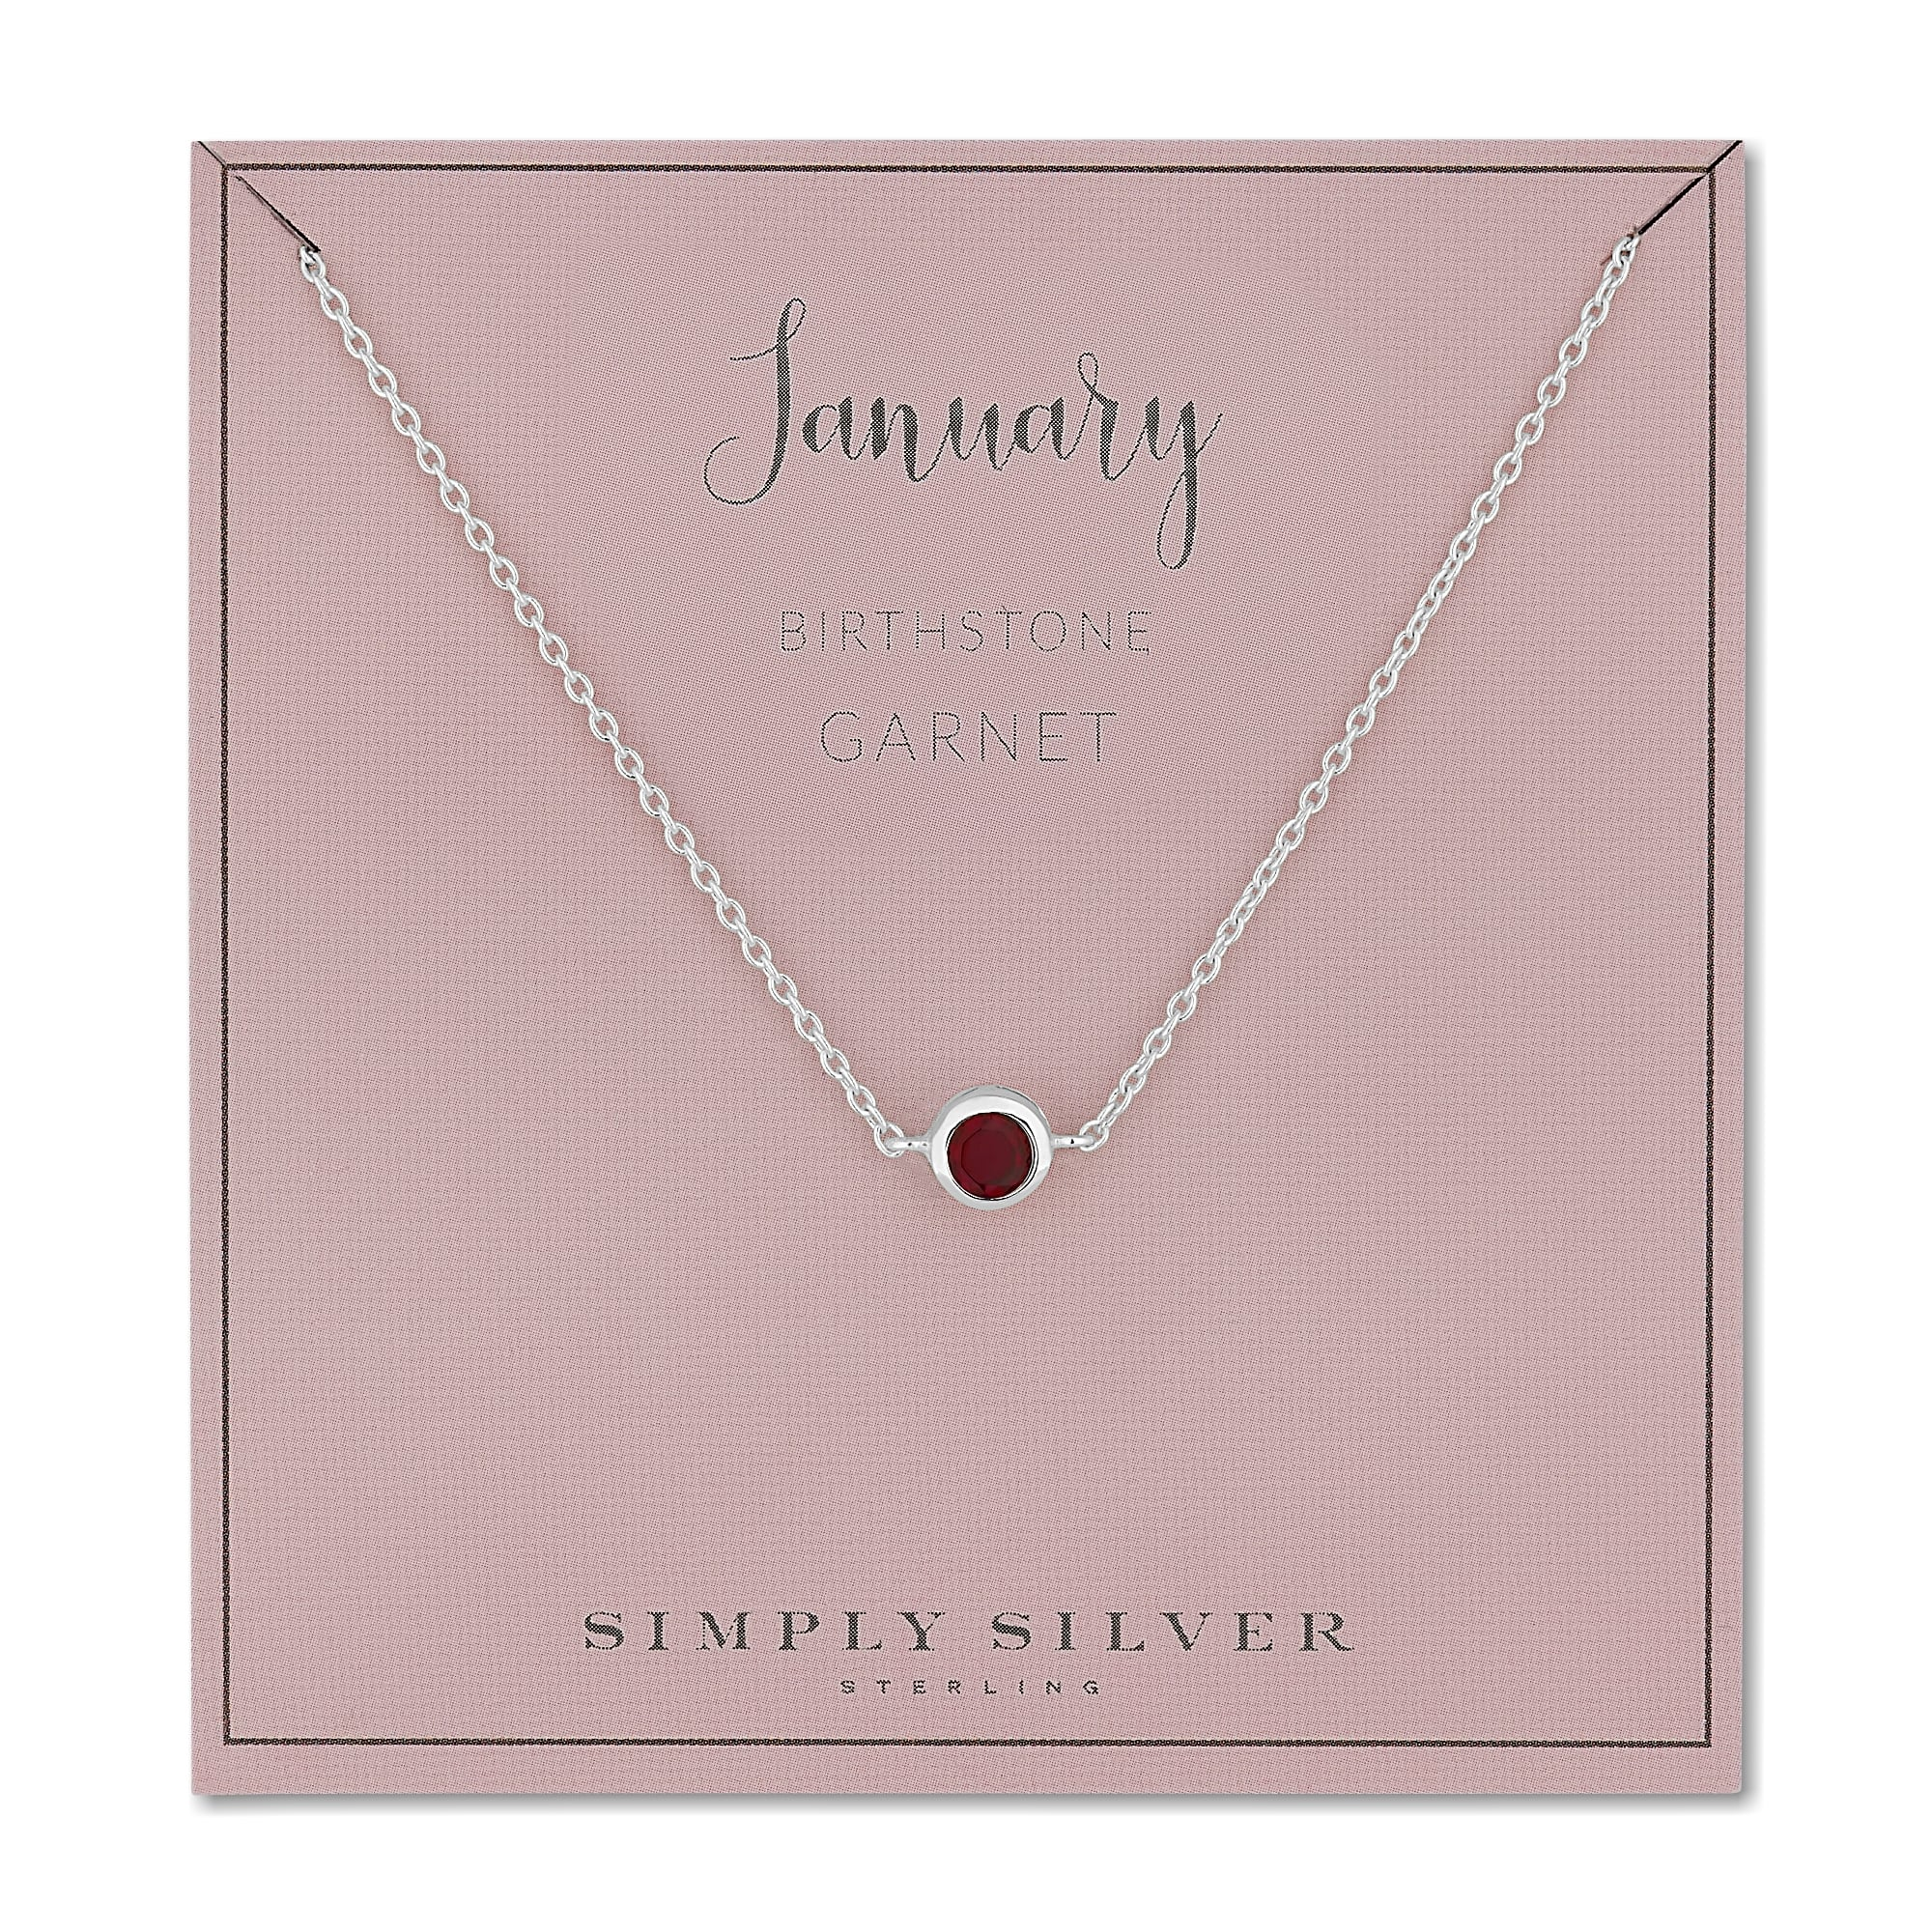 richard card sterling on january garnet birthday zoom simply gifts red silver necklace a birthstone gift jon june